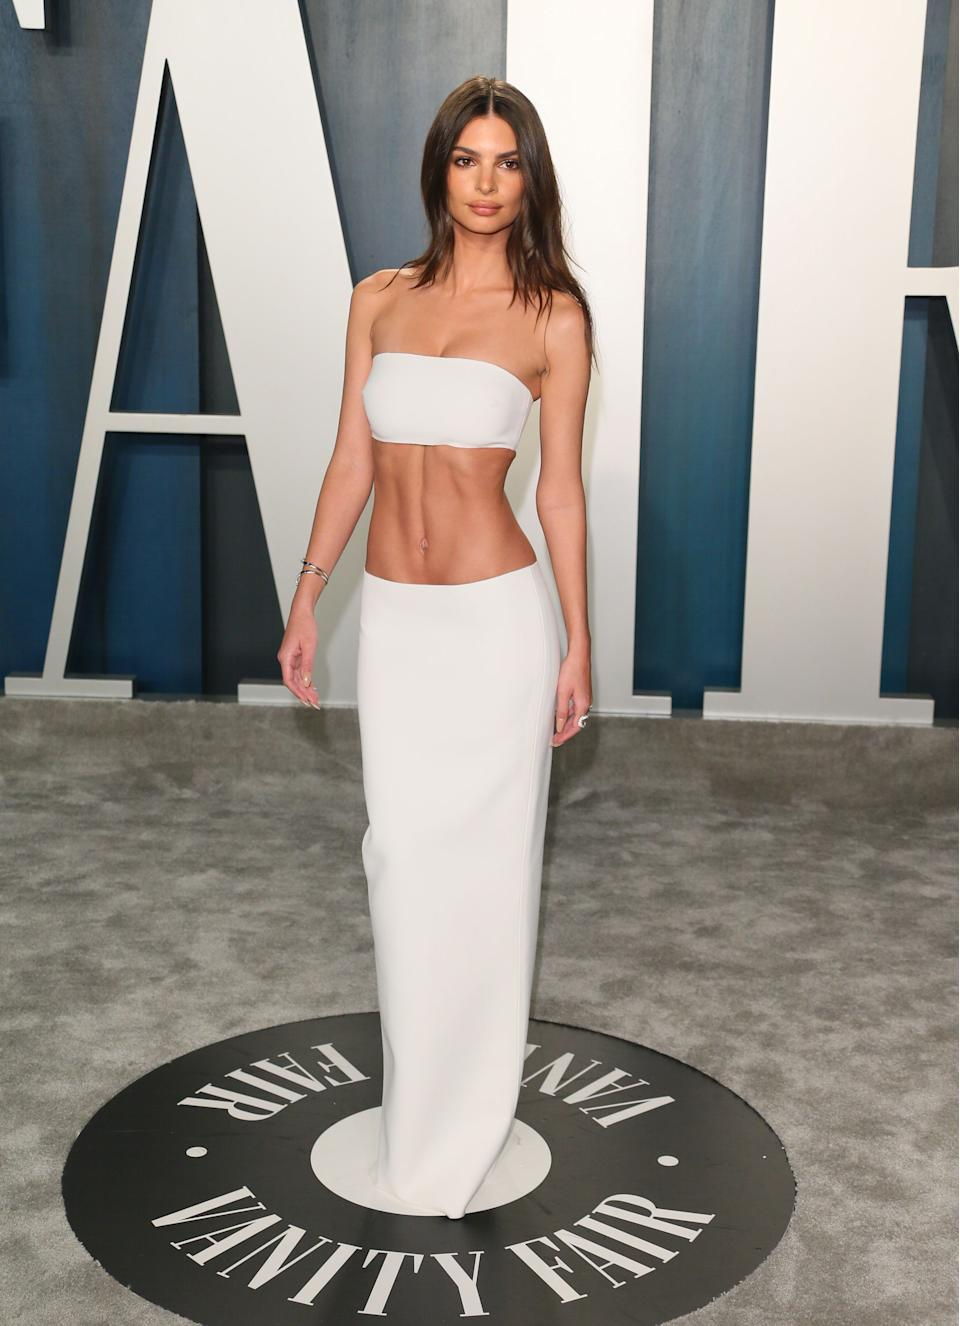 Emily Ratajkowski at the 2020 Vanity Fair Oscar Party following the 92nd Oscars. (Getty Images)